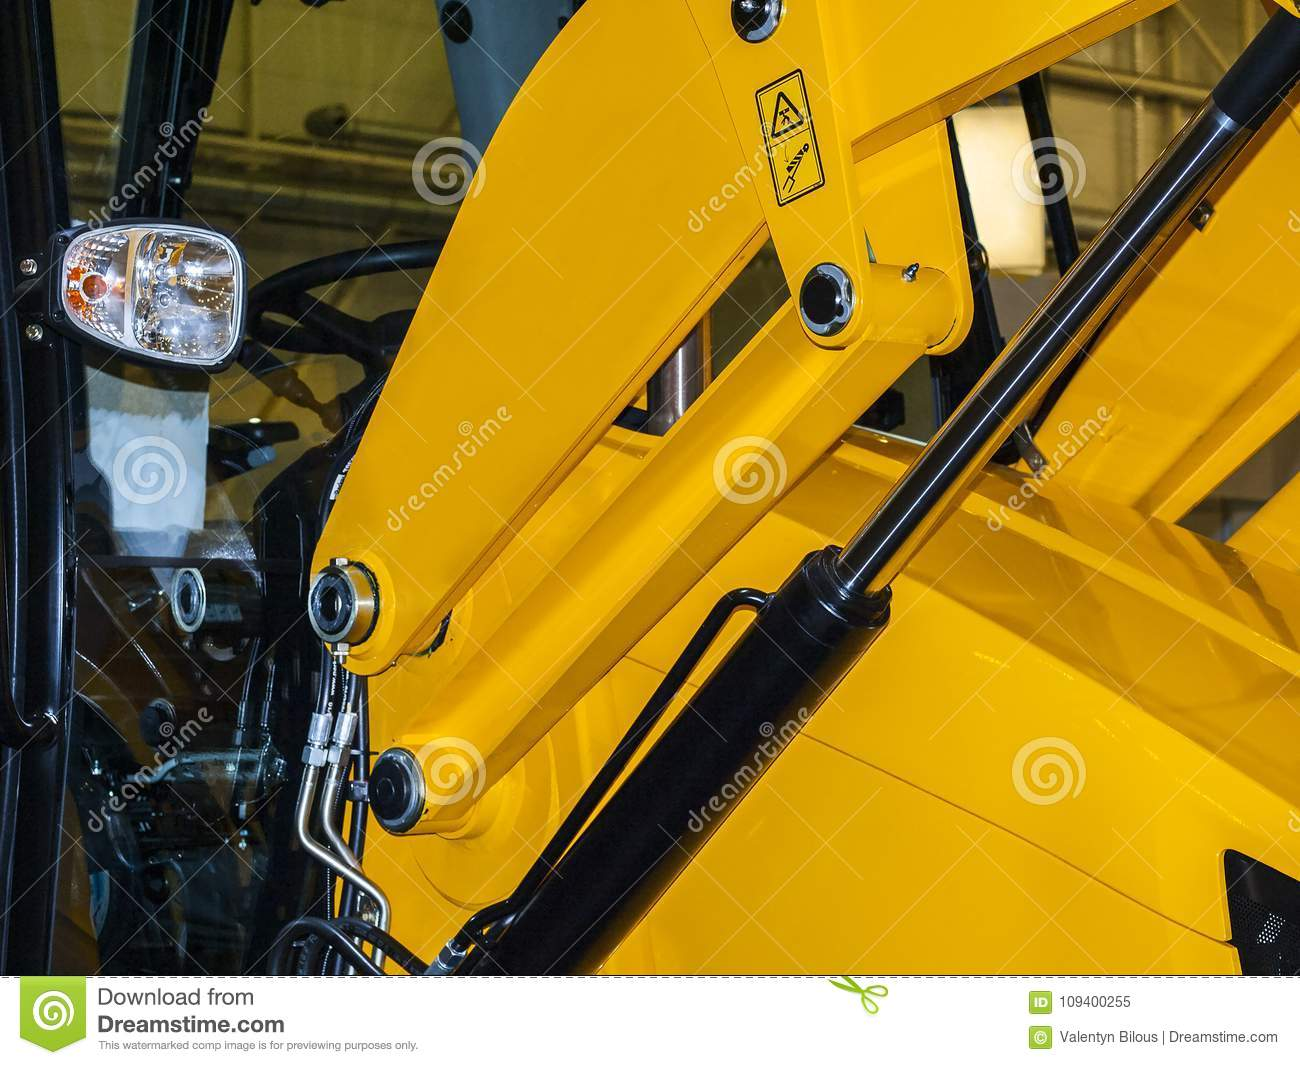 Lifting Mechanism Of Loader Stock Image - Image of rebaltabile